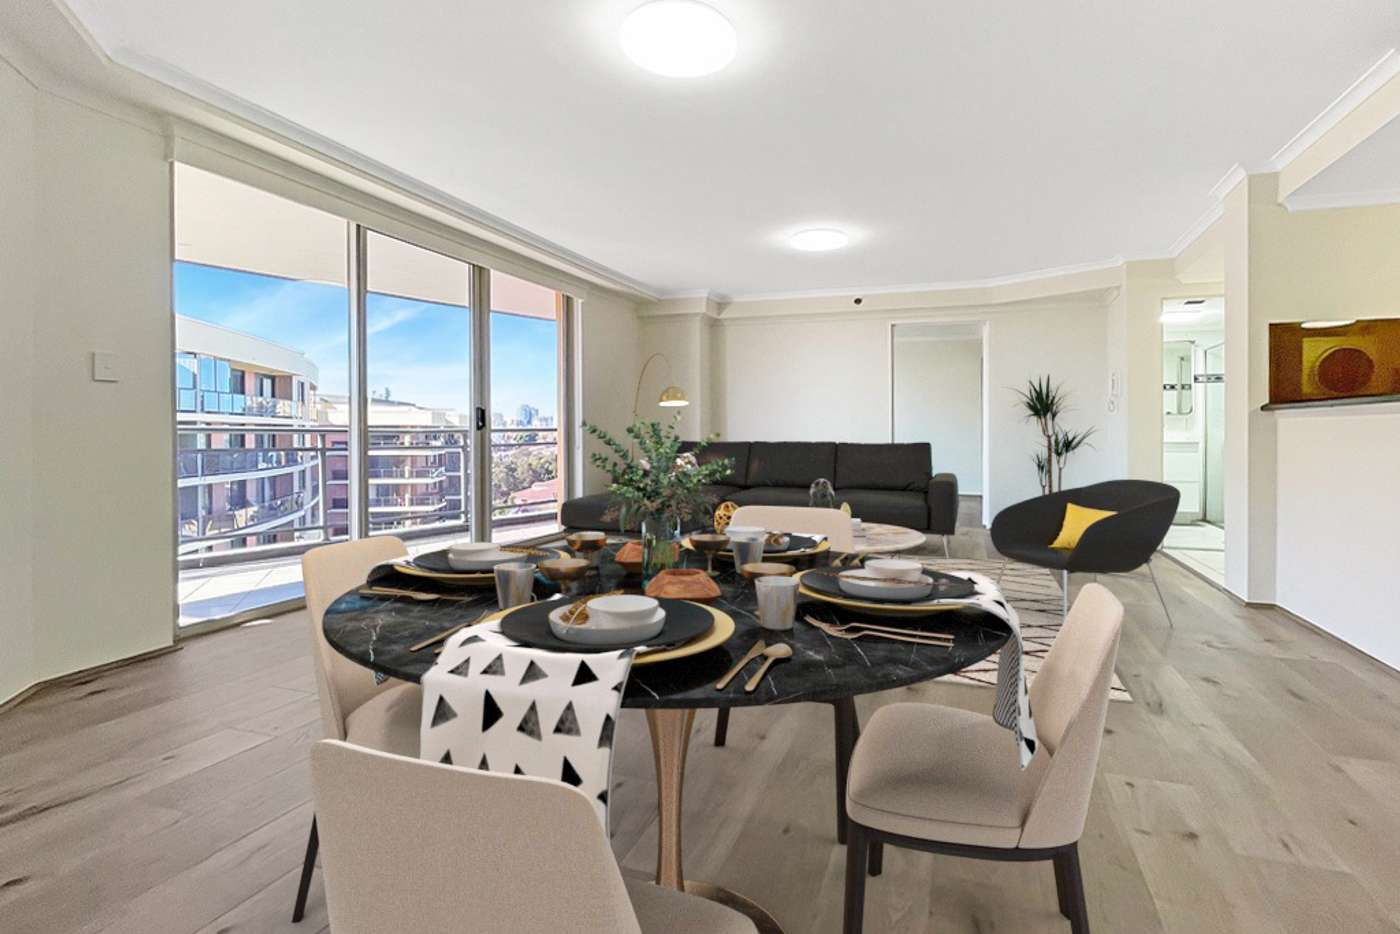 Main view of Homely apartment listing, 98/5-7 Beresford Road, Strathfield NSW 2135